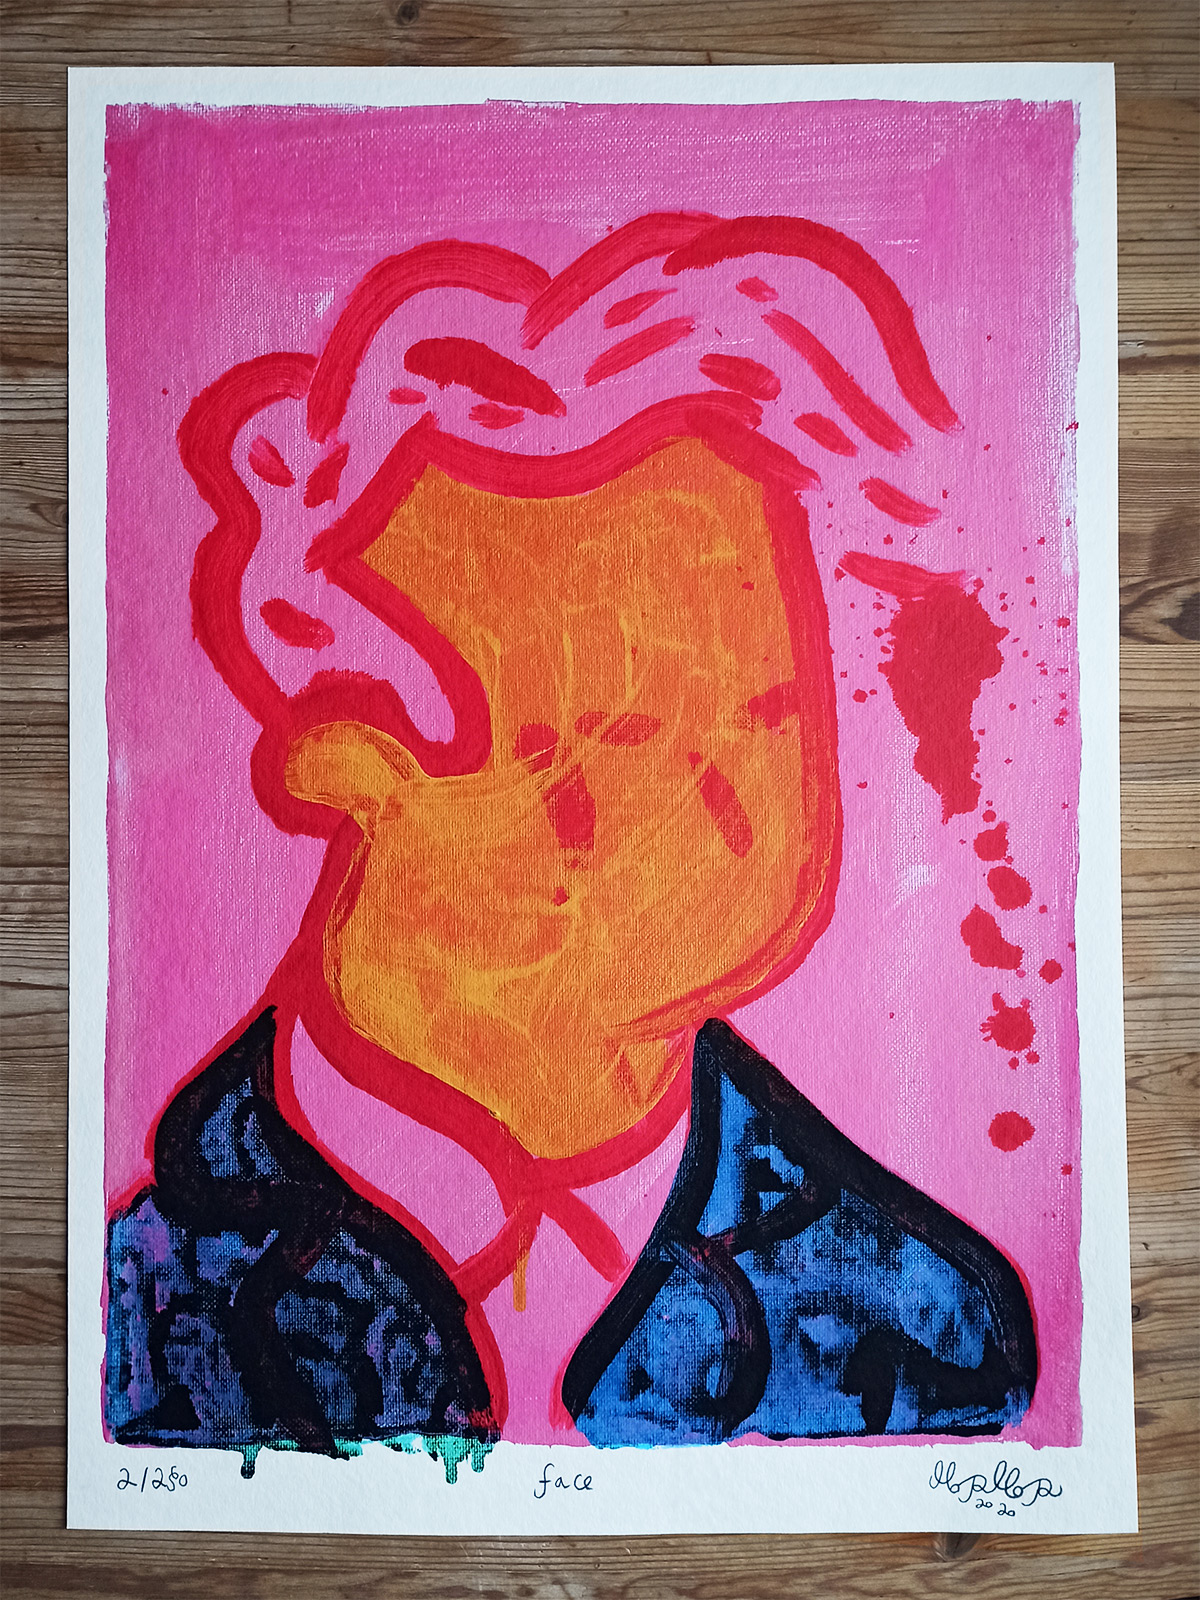 posters-prints, giclee-print, colorful, figurative, graphical, illustrative, bodies, cartoons, people, blue, pink, red, white, paper, amusing, danish, decorative, design, faces, interior, interior-design, modern, modern-art, nordic, posters, prints, scandinavien, Buy original high quality art. Paintings, drawings, limited edition prints & posters by talented artists.